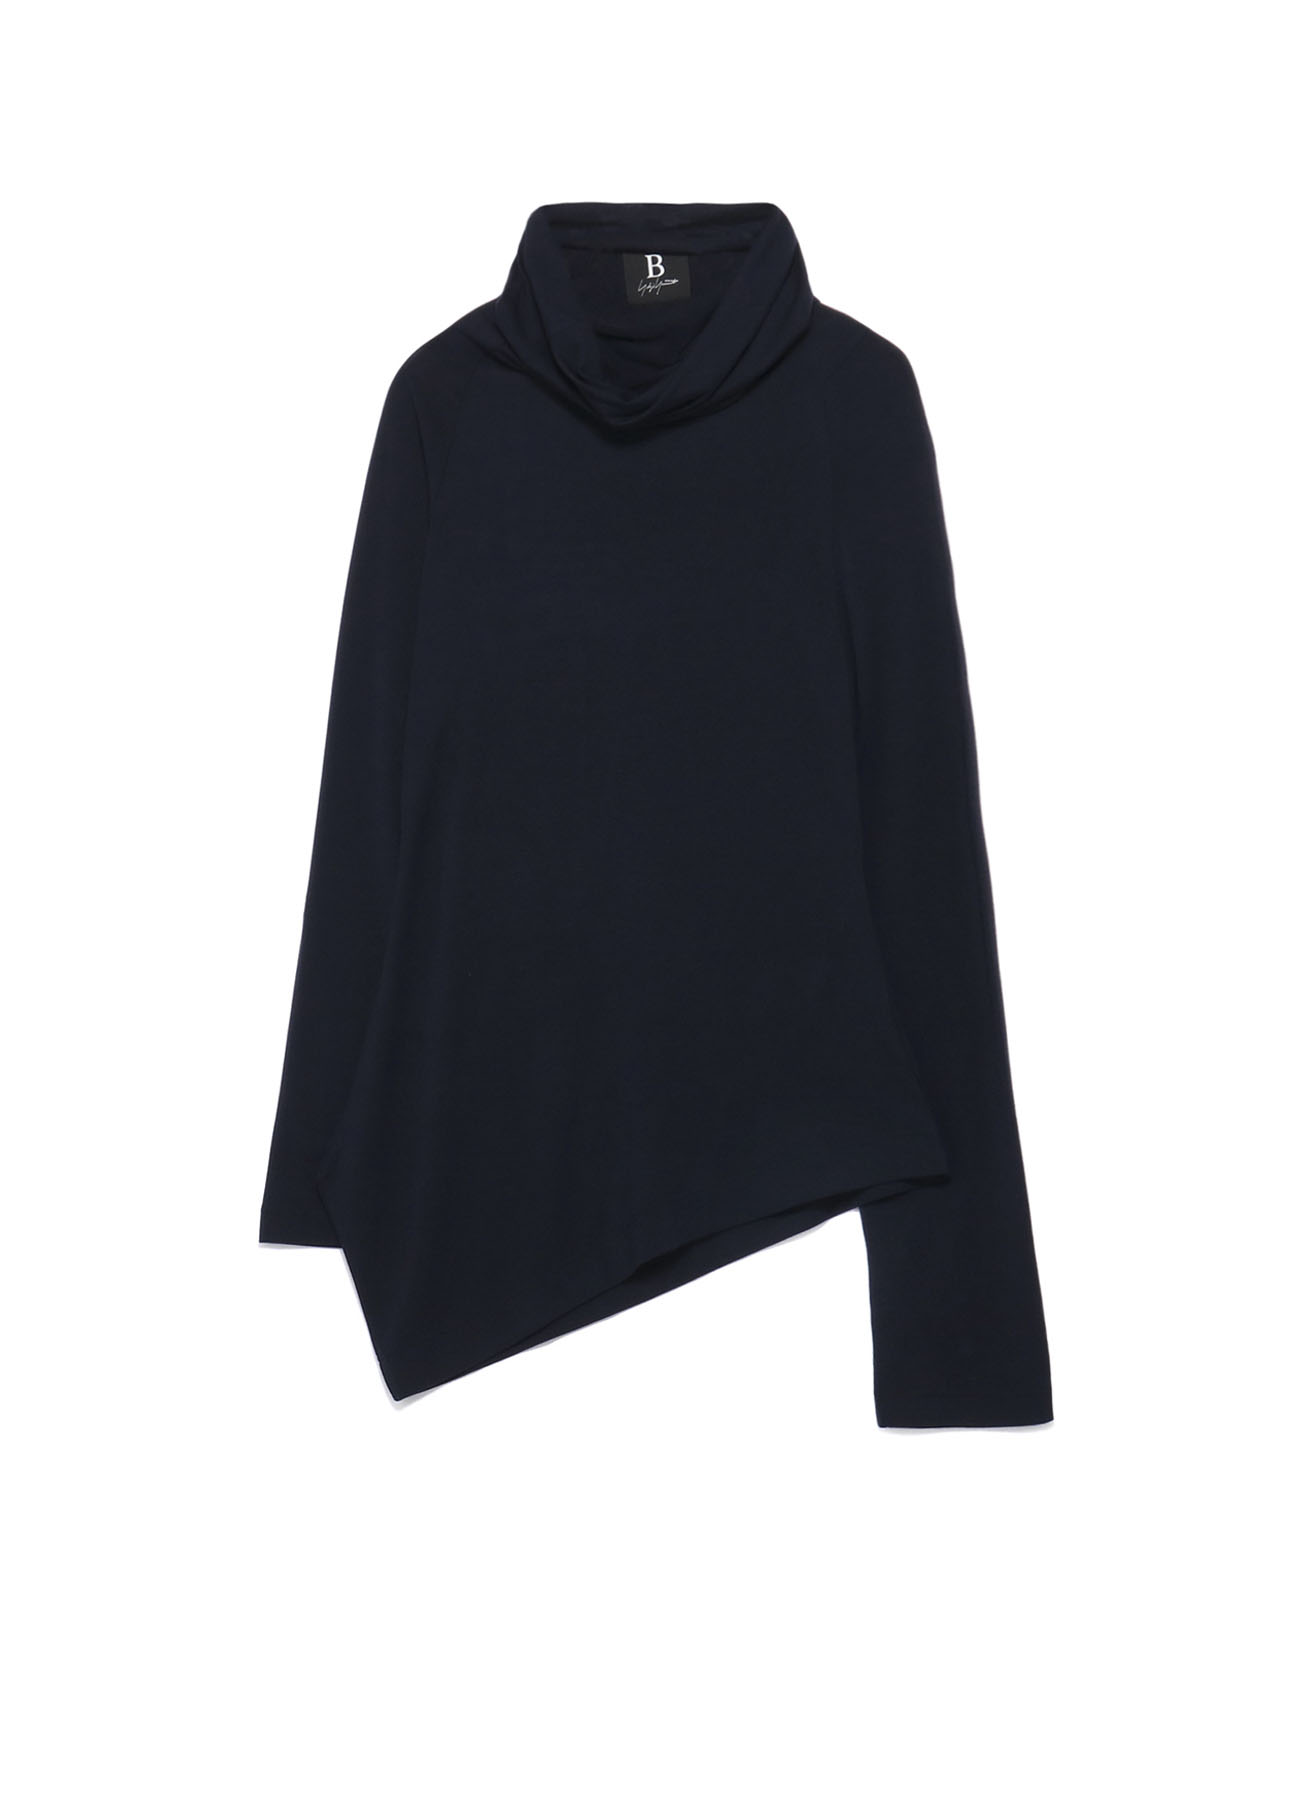 B/Rug Warm Asymmetry Turtleneck T-shirt